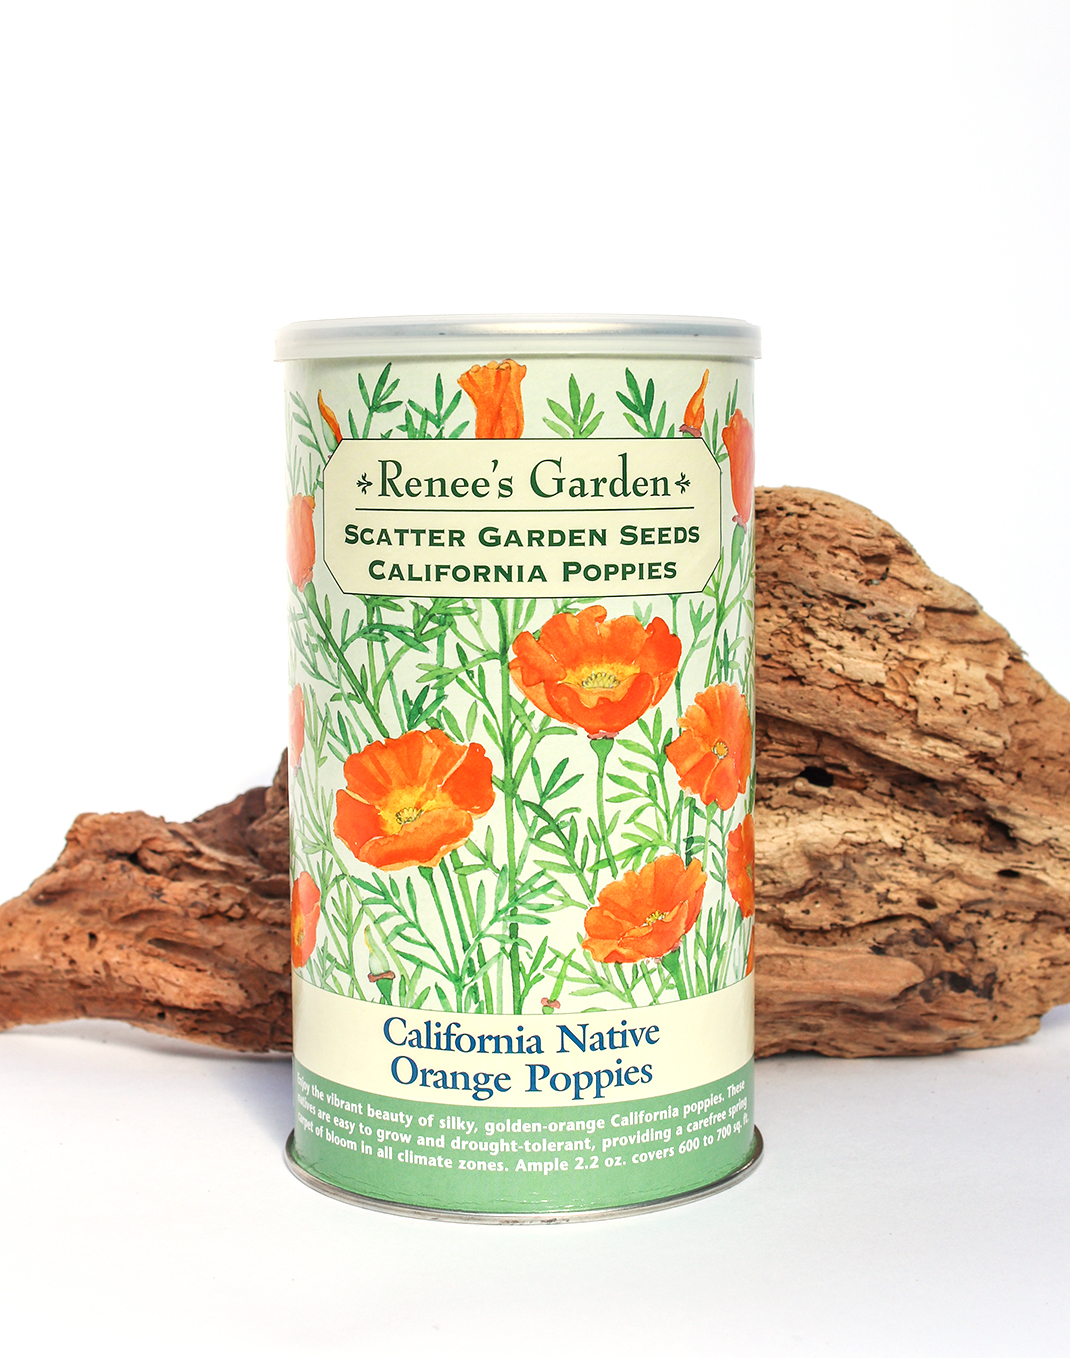 California Poppy Seeds